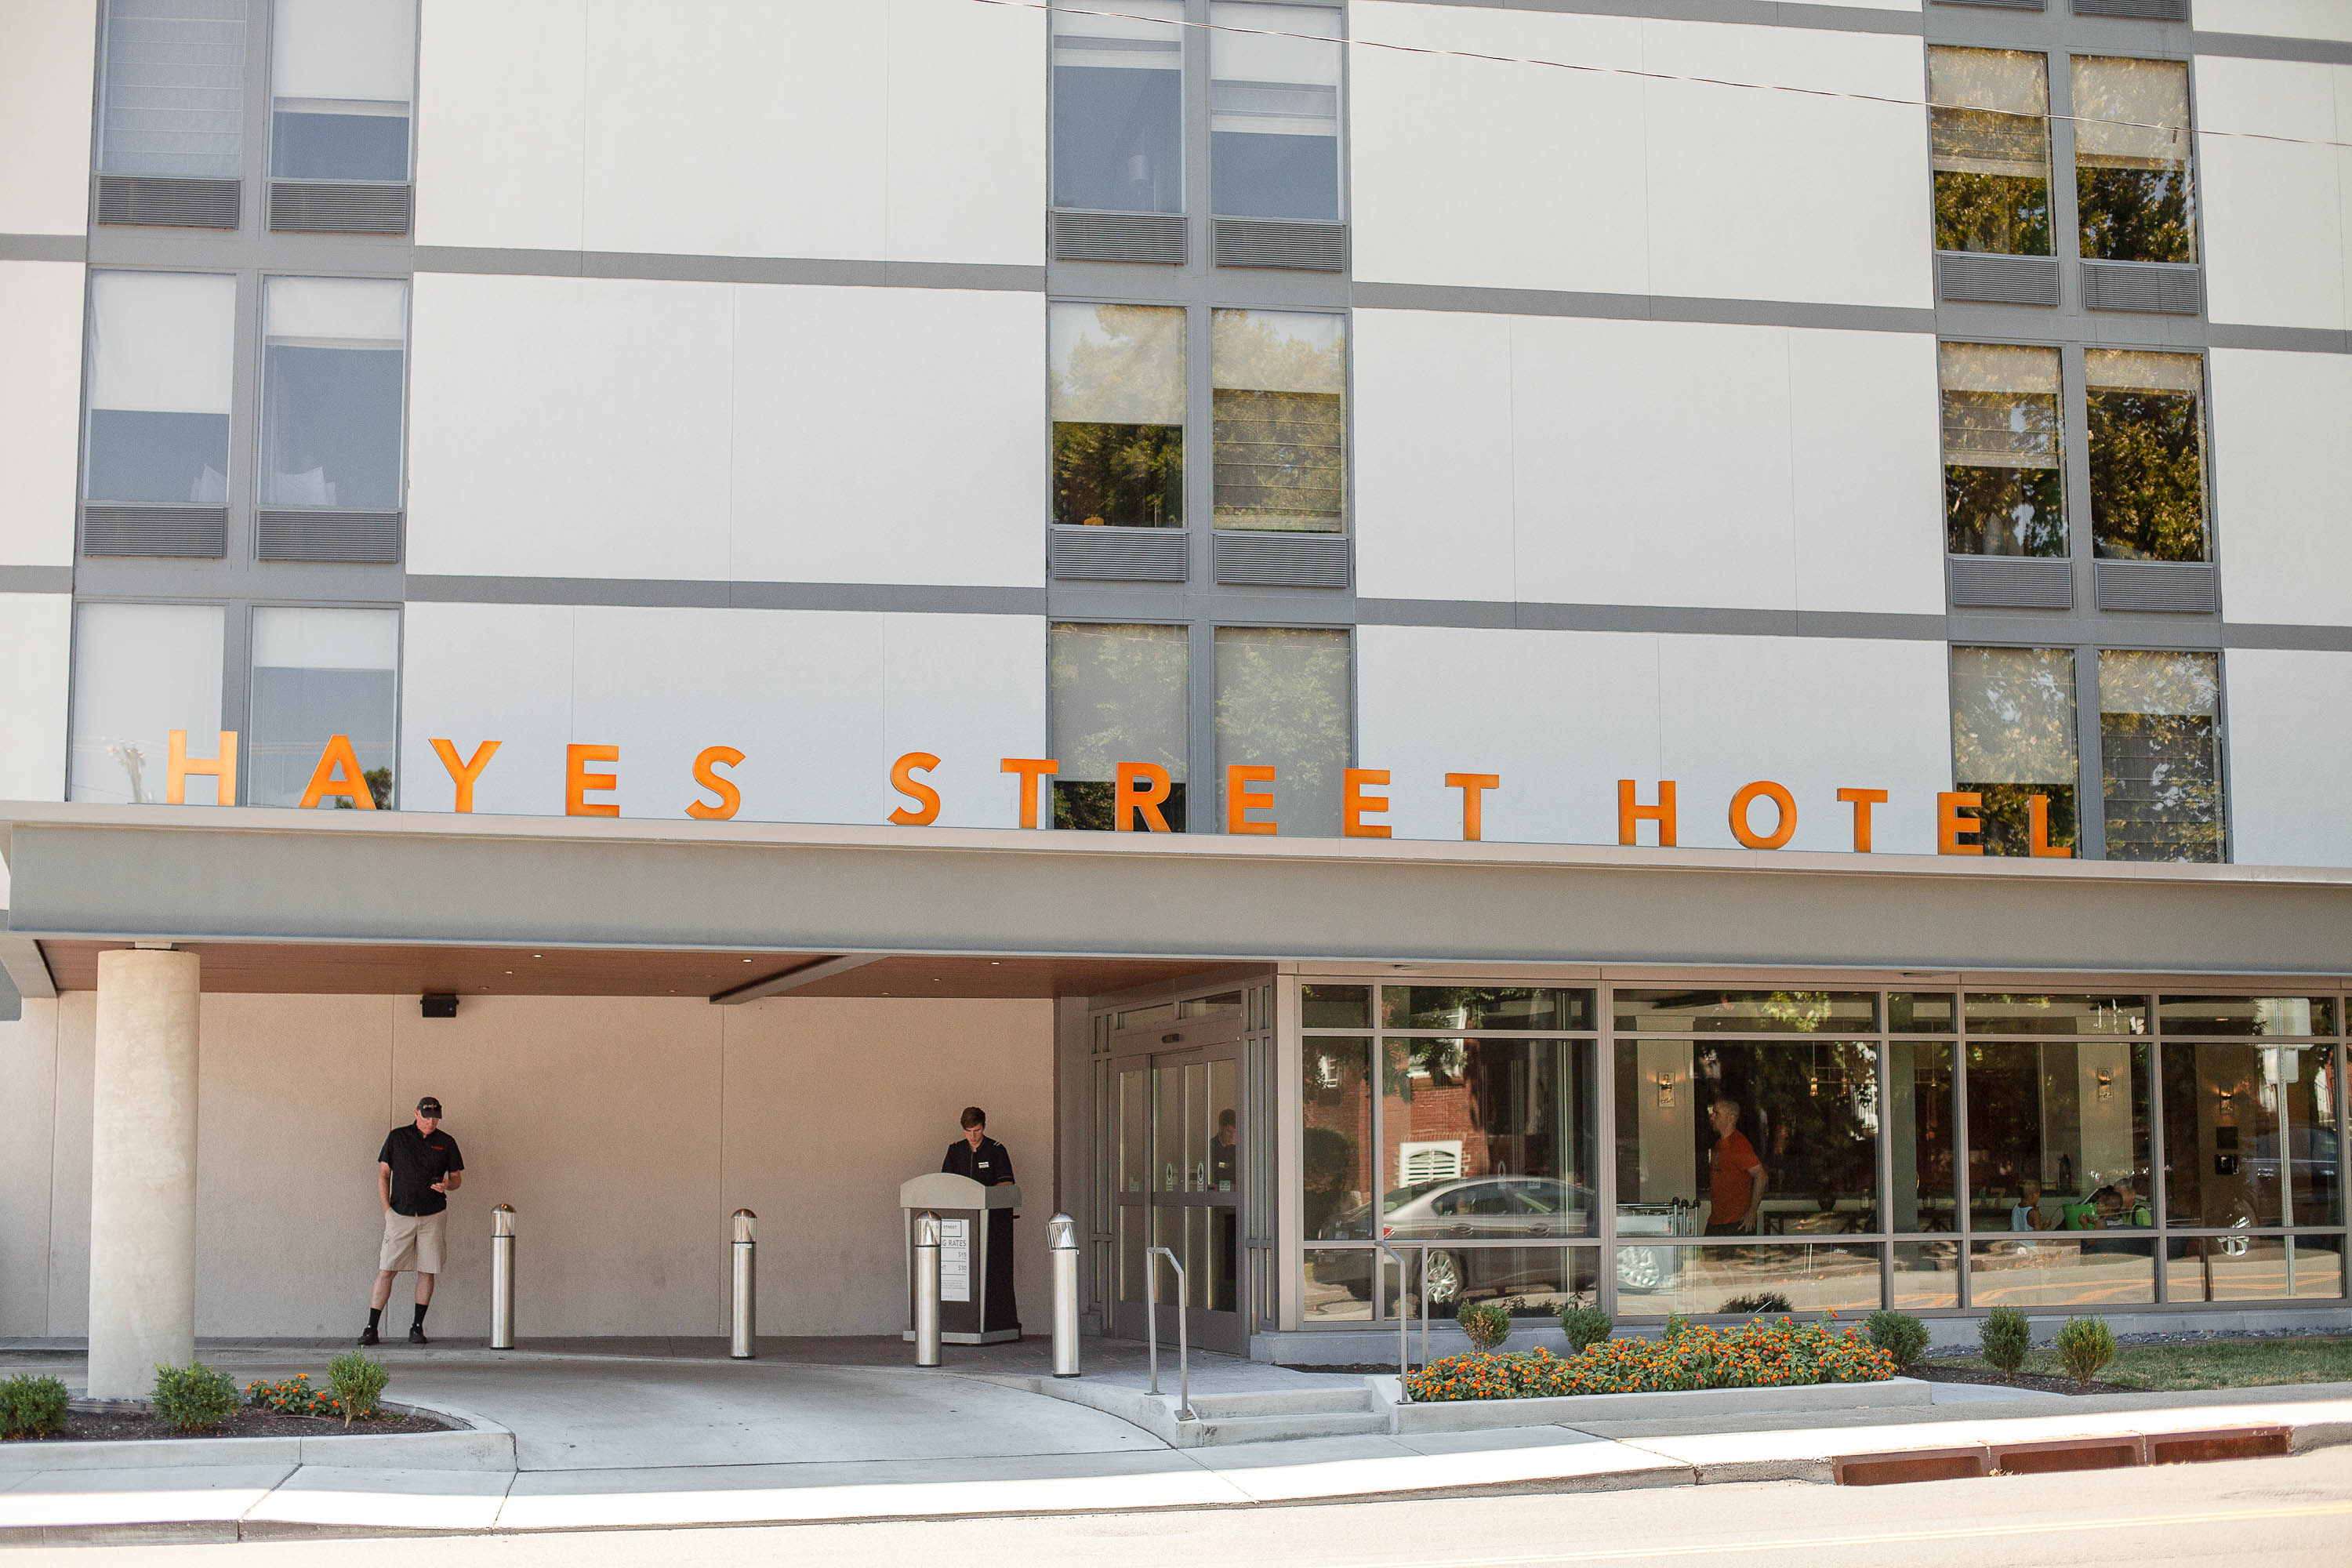 Where To Stay In Nashville | The Hayes Street Hotel